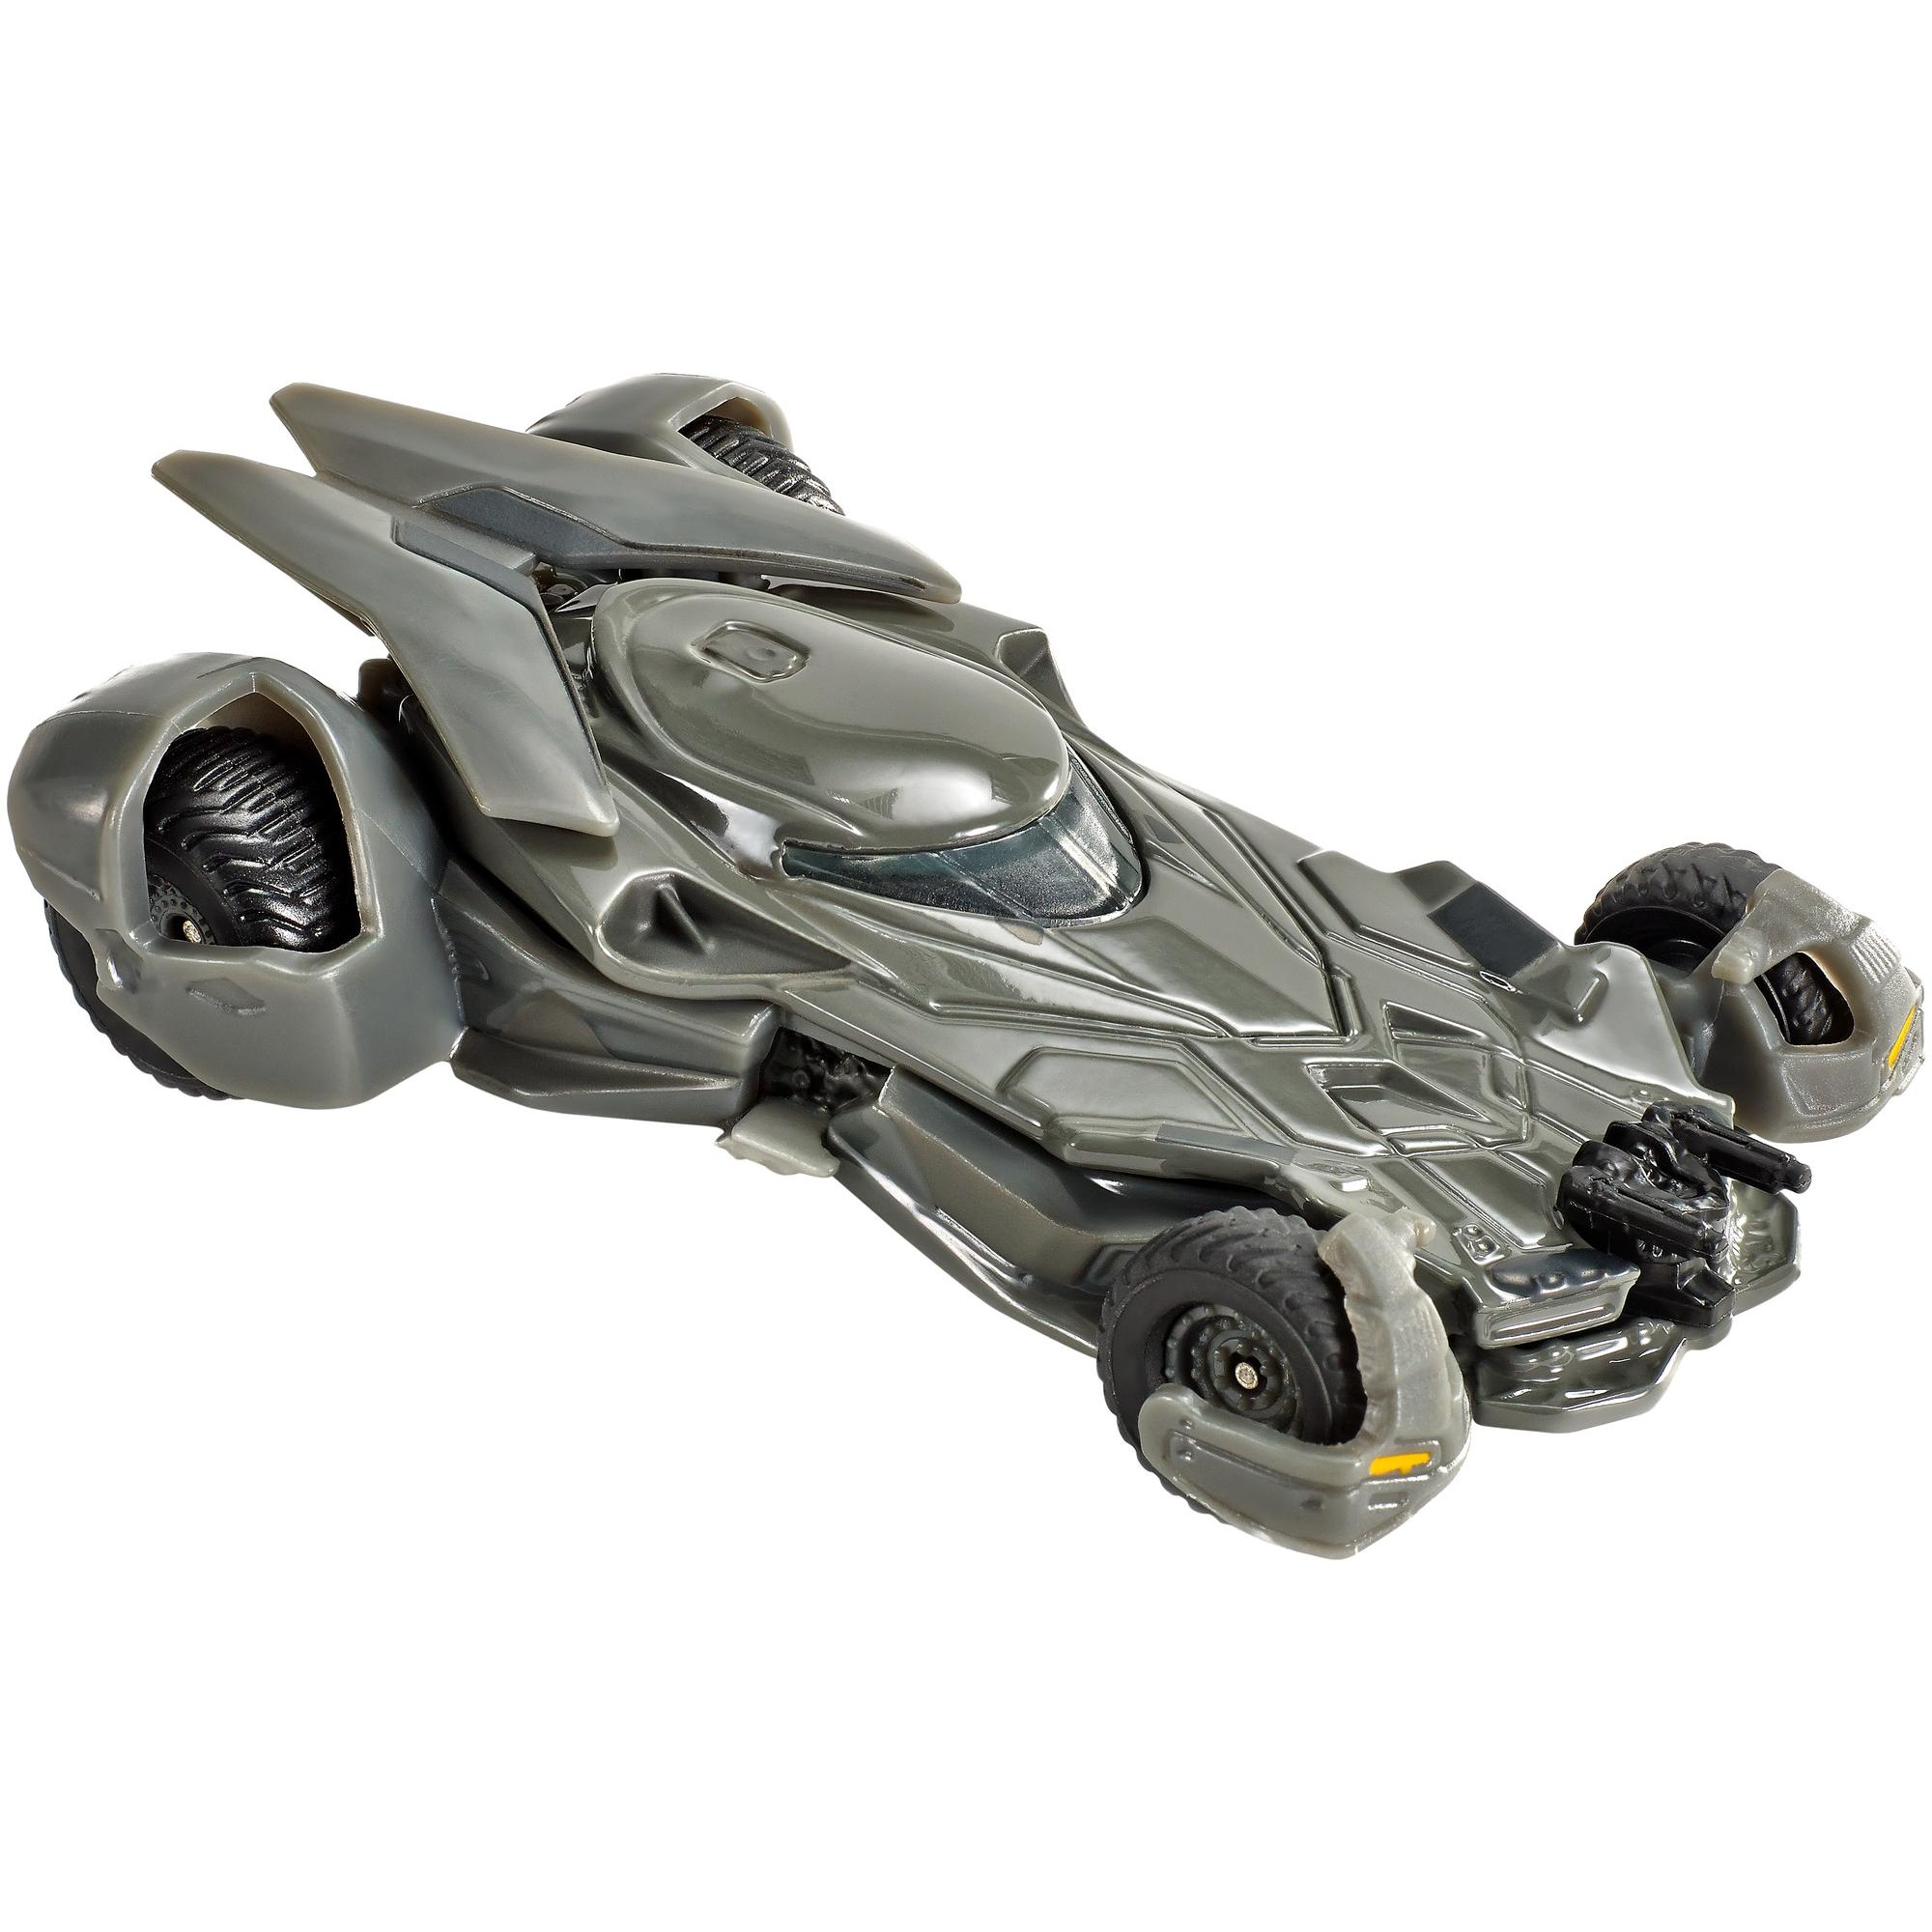 Hot Wheels 1:50 Batman Vehicle (Styles May Vary) by Mattel